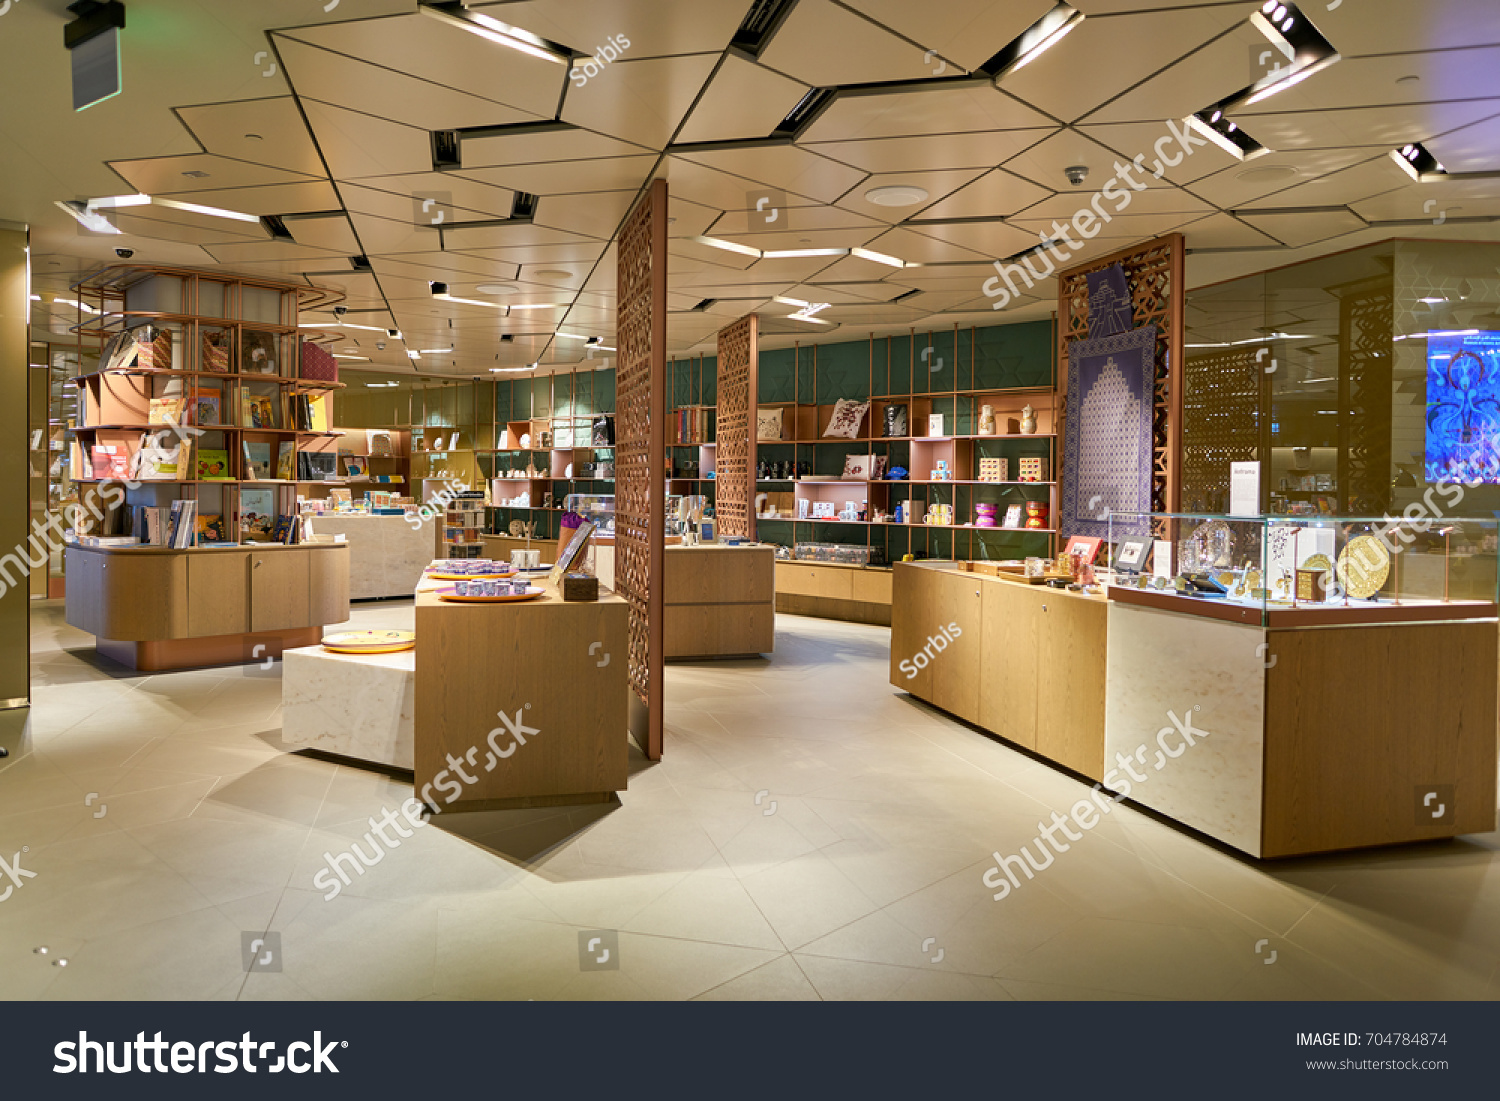 DOHA, QATAR - CIRCA MAY, 2017: In-Q Gift Shop at Hamad